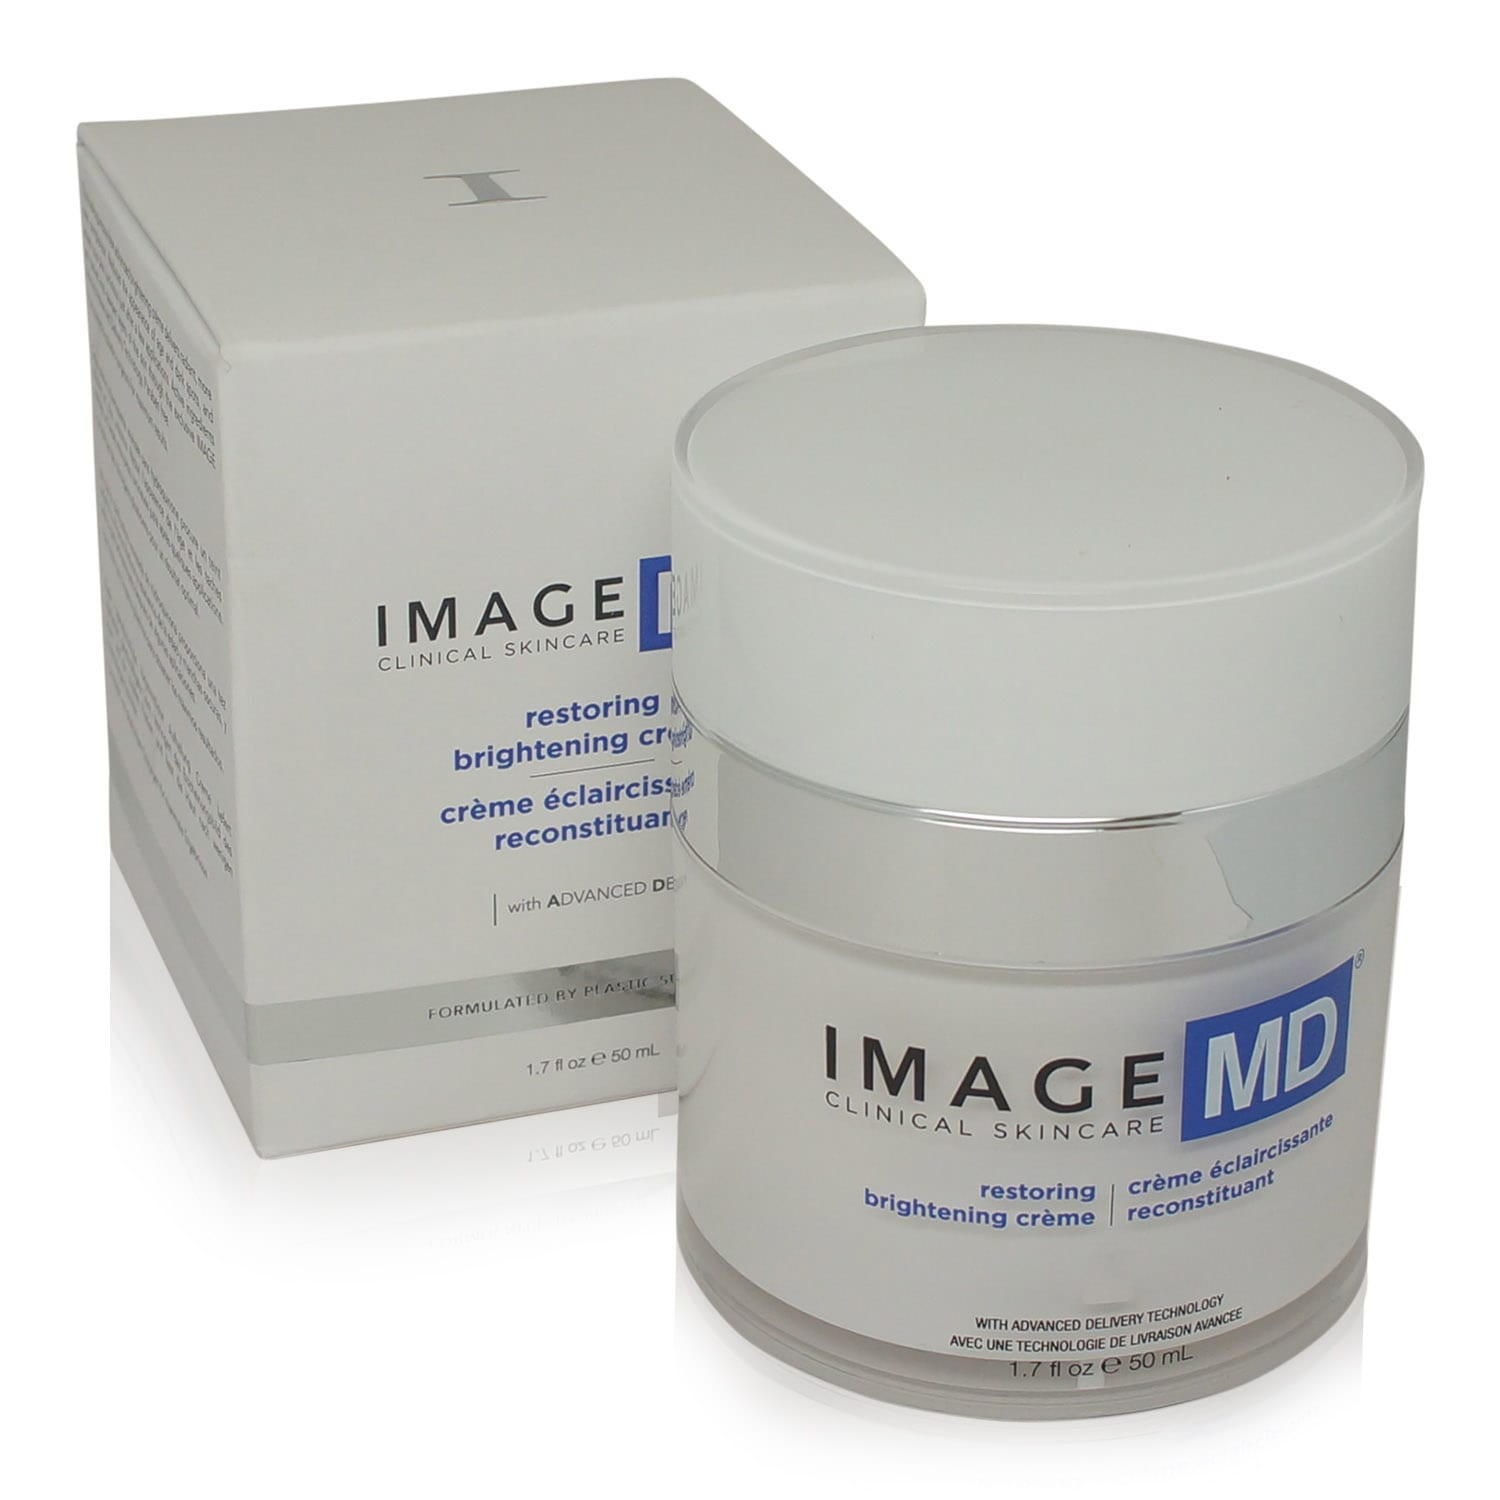 Image SKincare moisturizing cream box and product front view